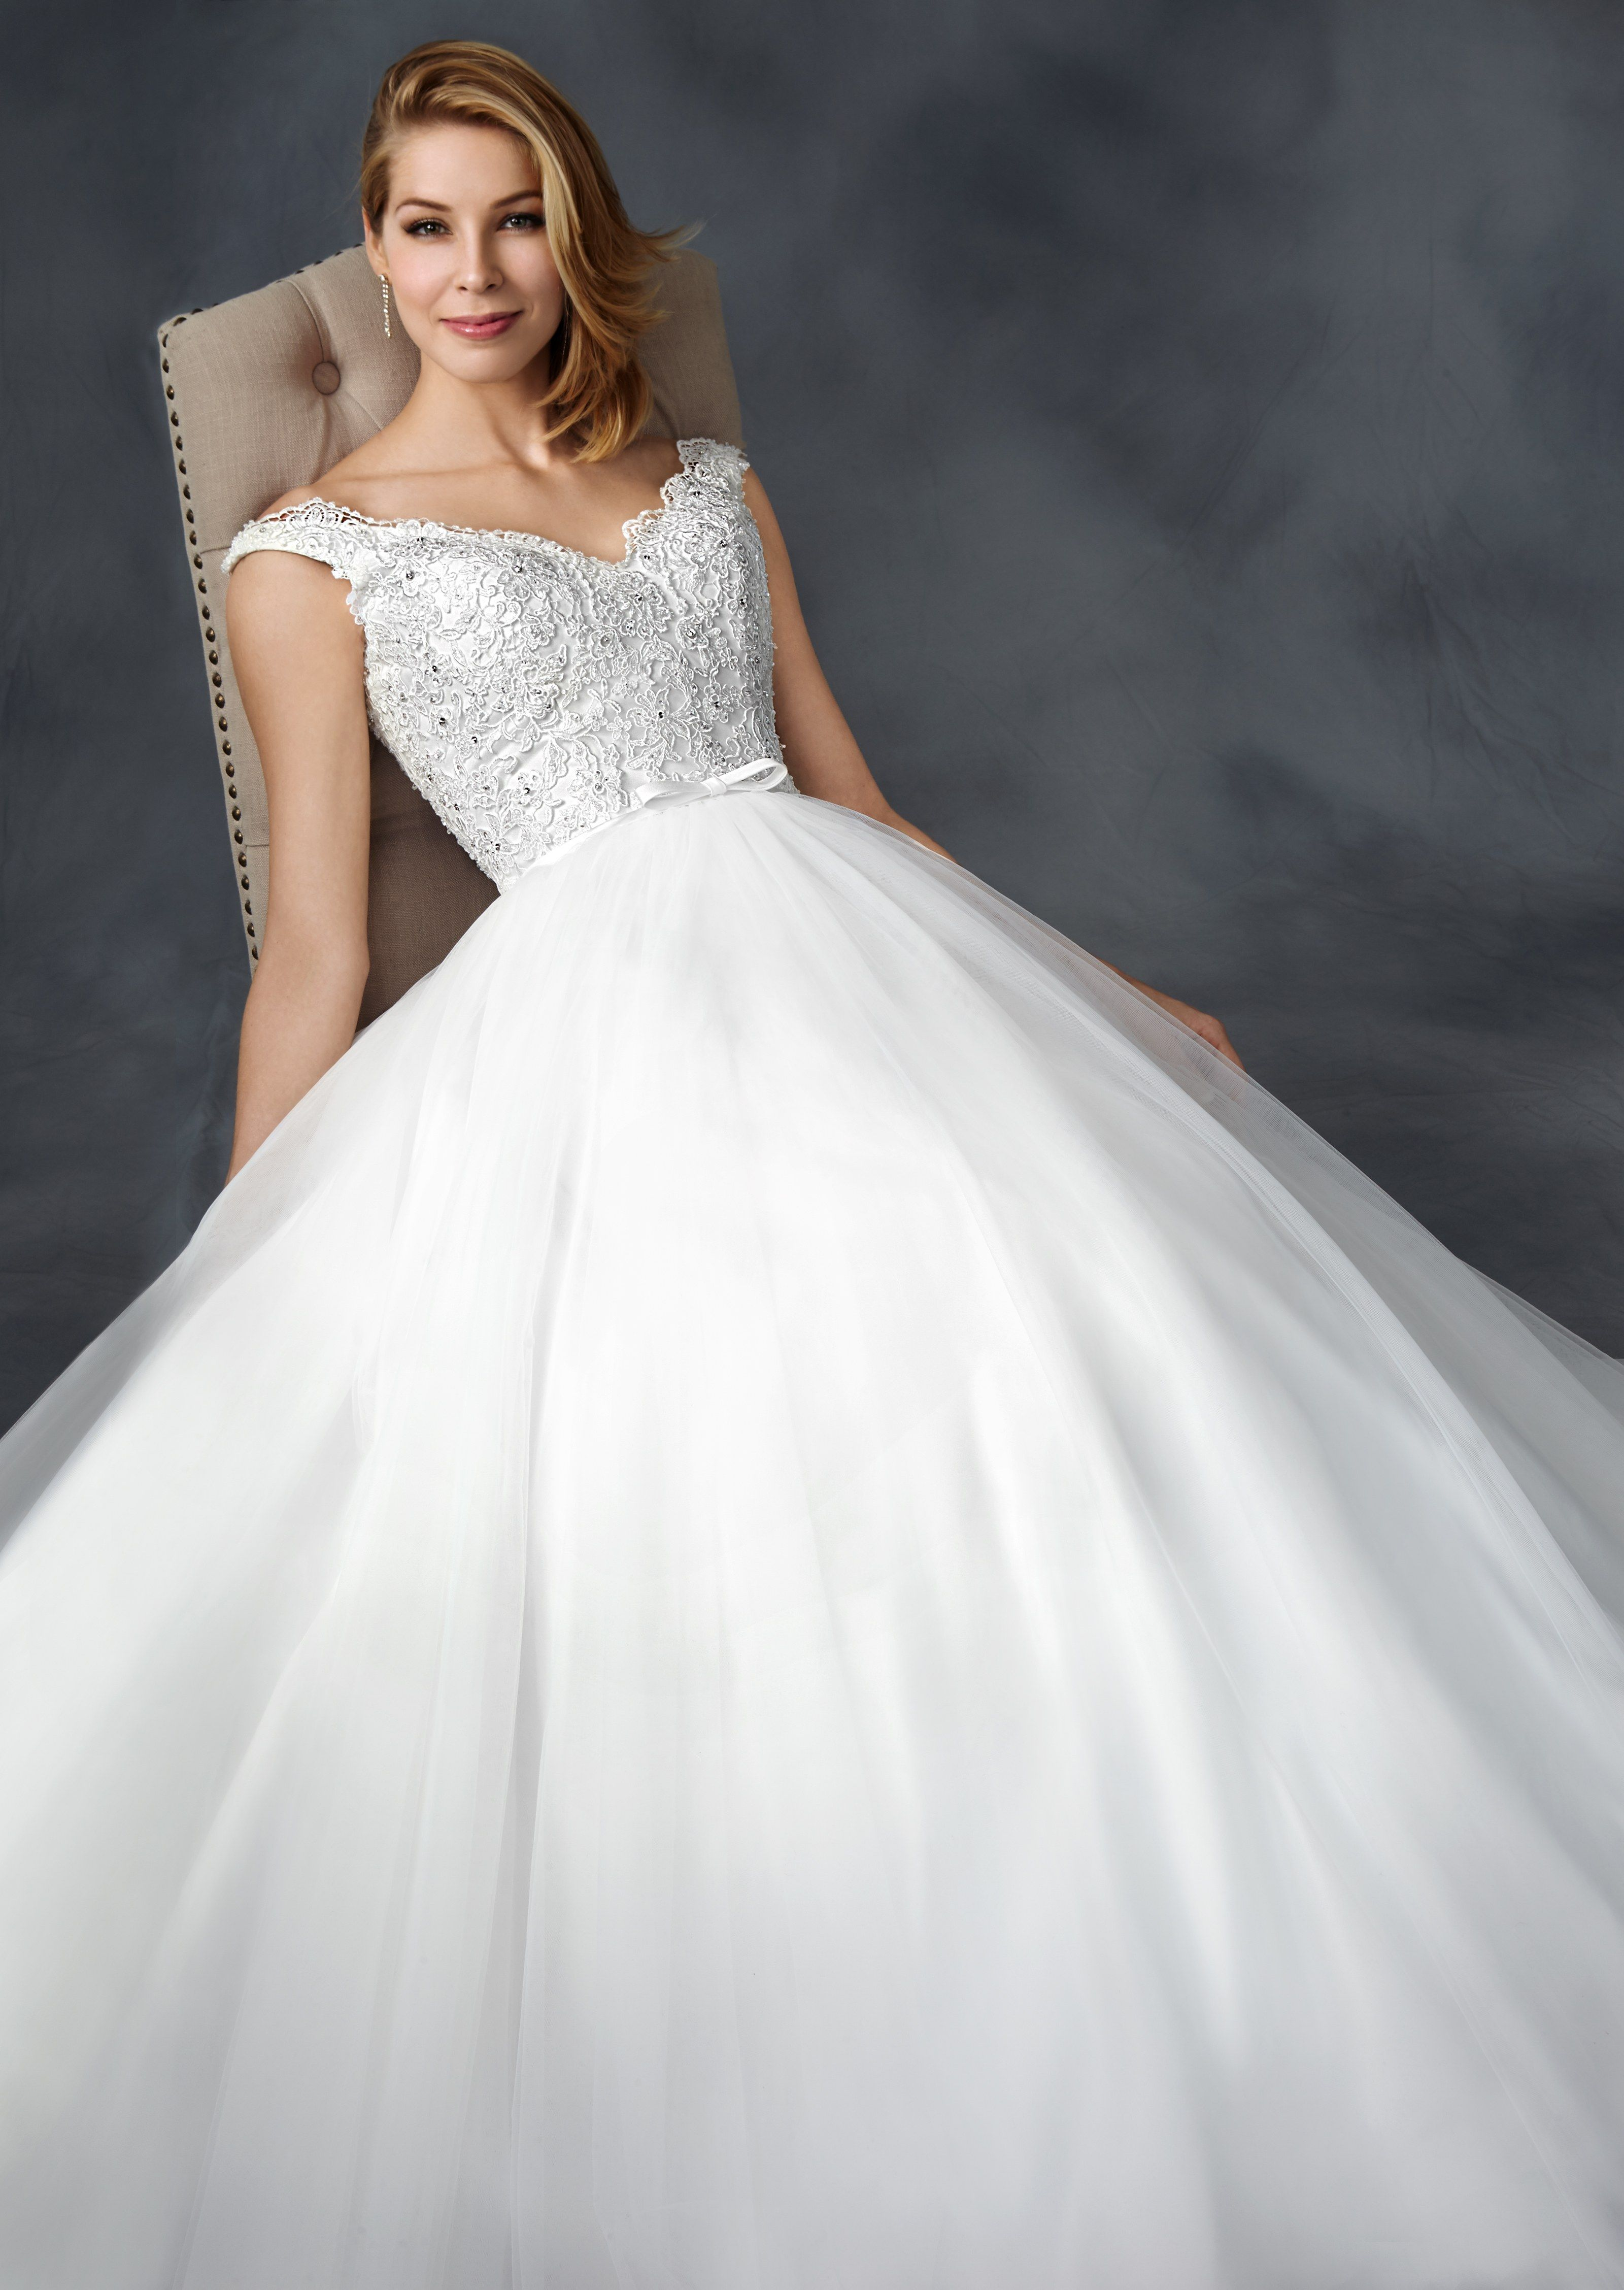 Wedding dresses under 1000 affordable wedding dresses wedding dresses under 1000 affordable wedding dresses inexpensive wedding gowns brides ombrellifo Images